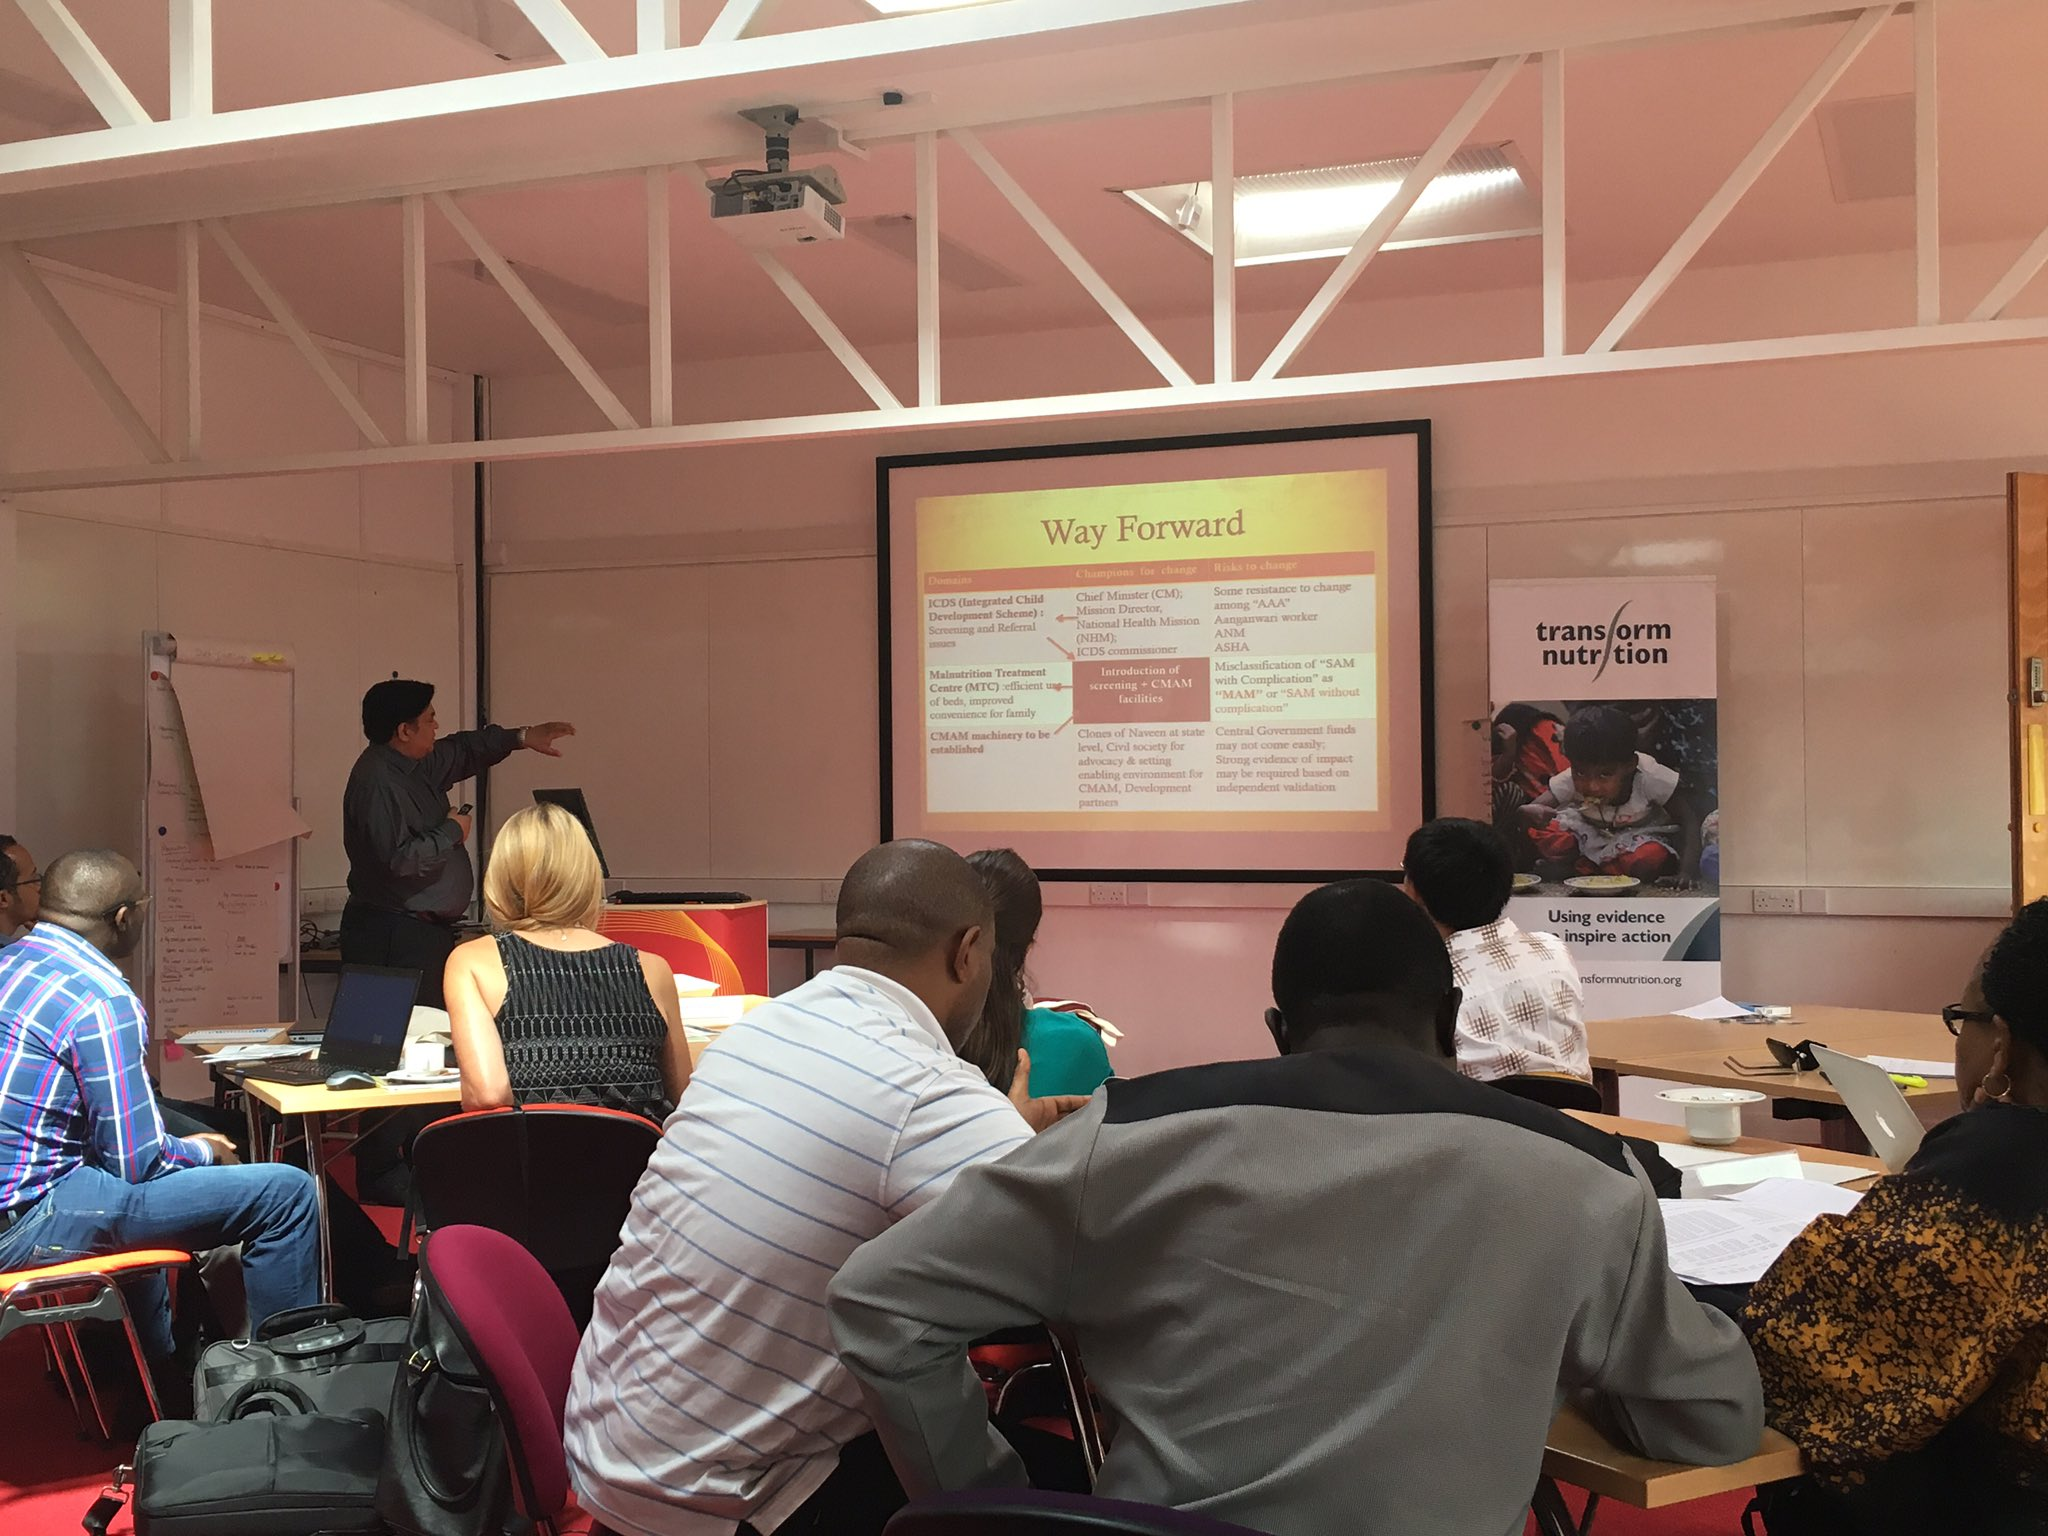 Naveen Jain from Rajasthan health service giving us a way forward for SAM @IDS_UK #transformingnutrition course https://t.co/JFEKY7SI2X